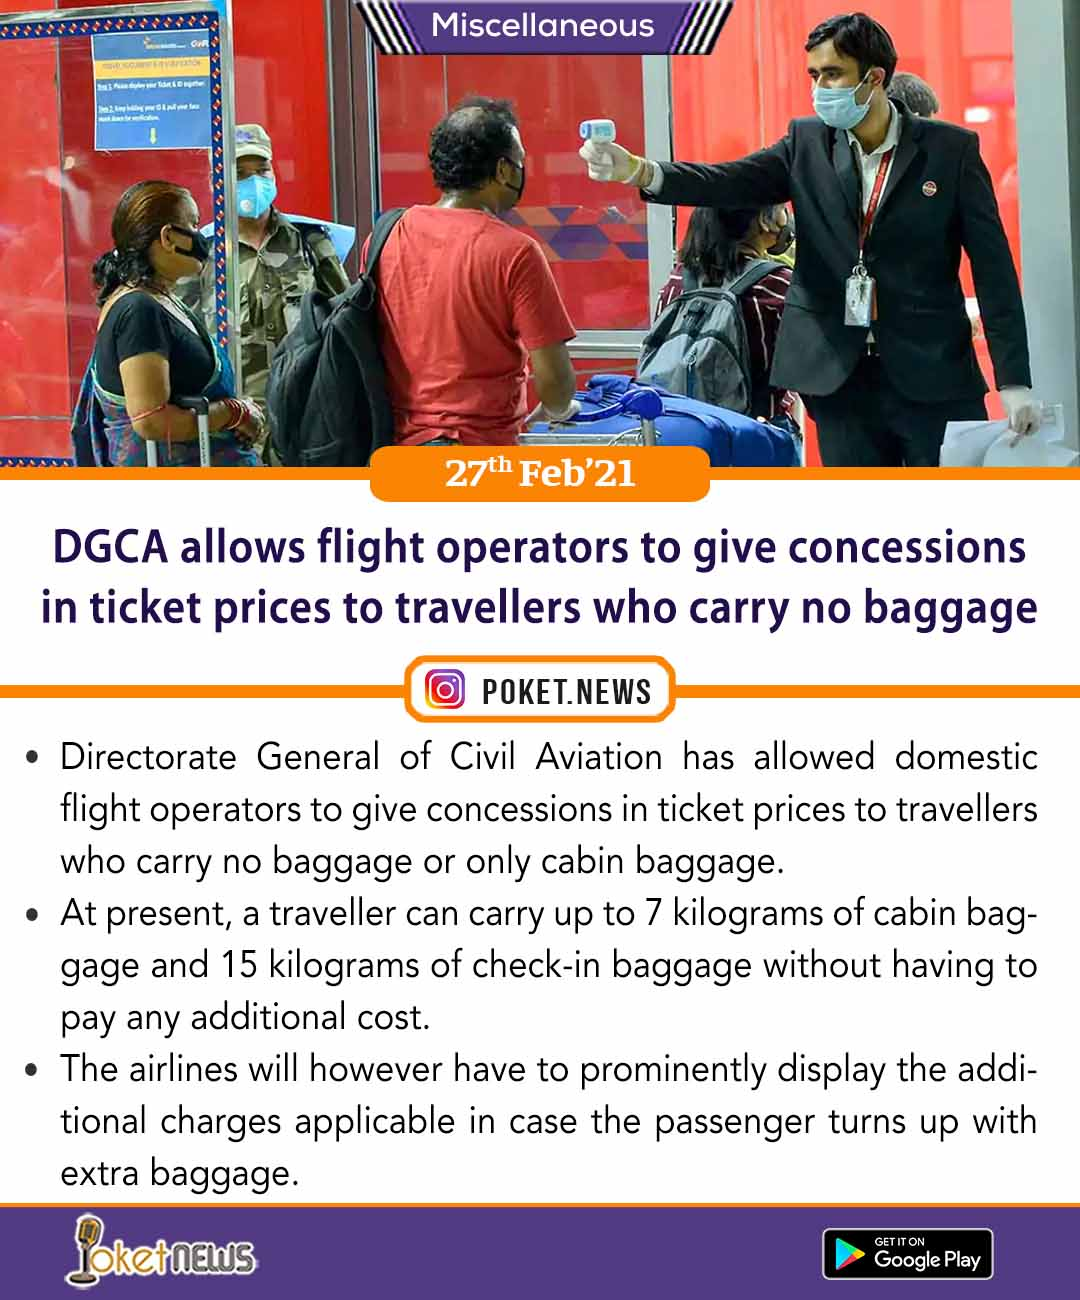 DGCA allows flight operators to give concessions in ticket prices to travellers who carry no baggage